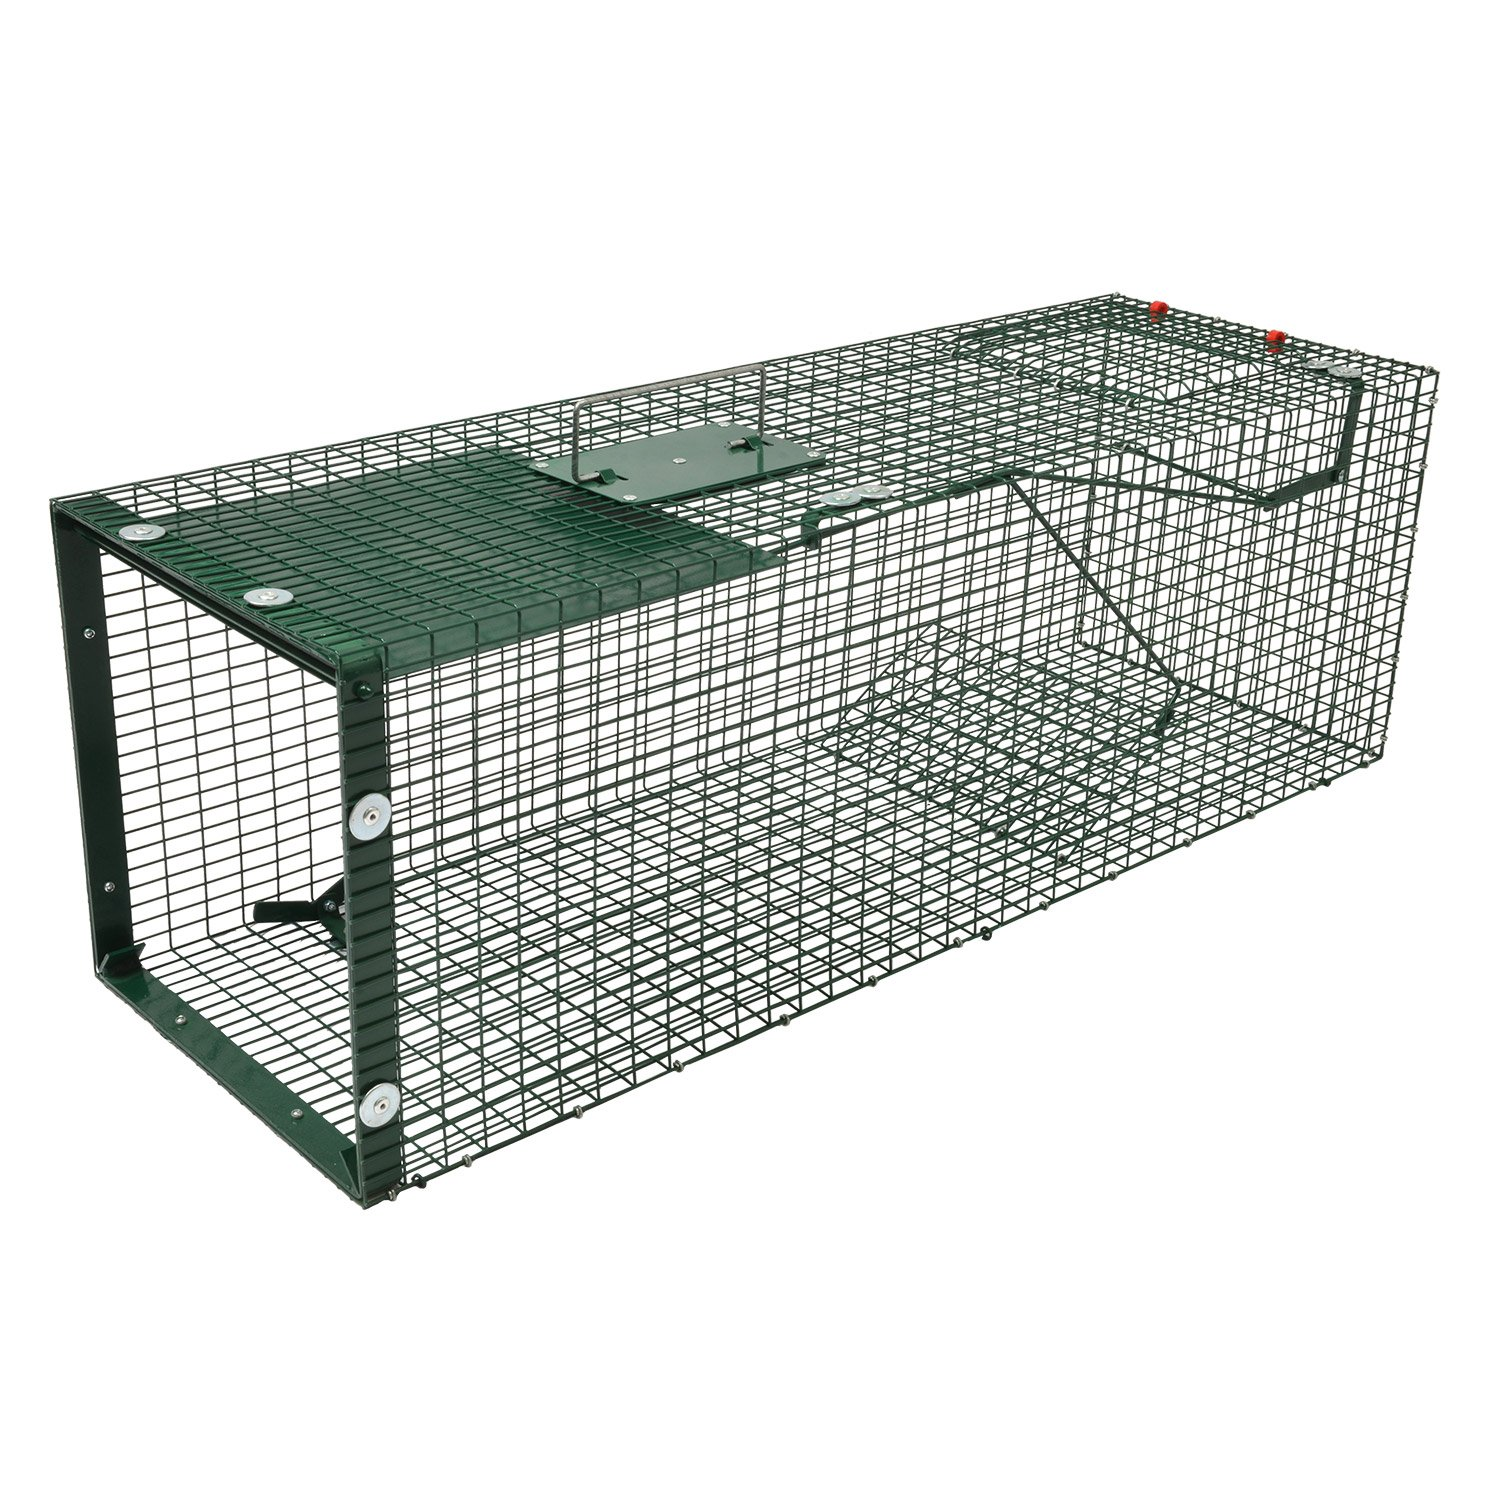 Moorland Stable Wire Cage Animal Trap 5002 Humane Live Trapping of Feral Cat Marten Mink Fox, 90 x 30 x 30 cm